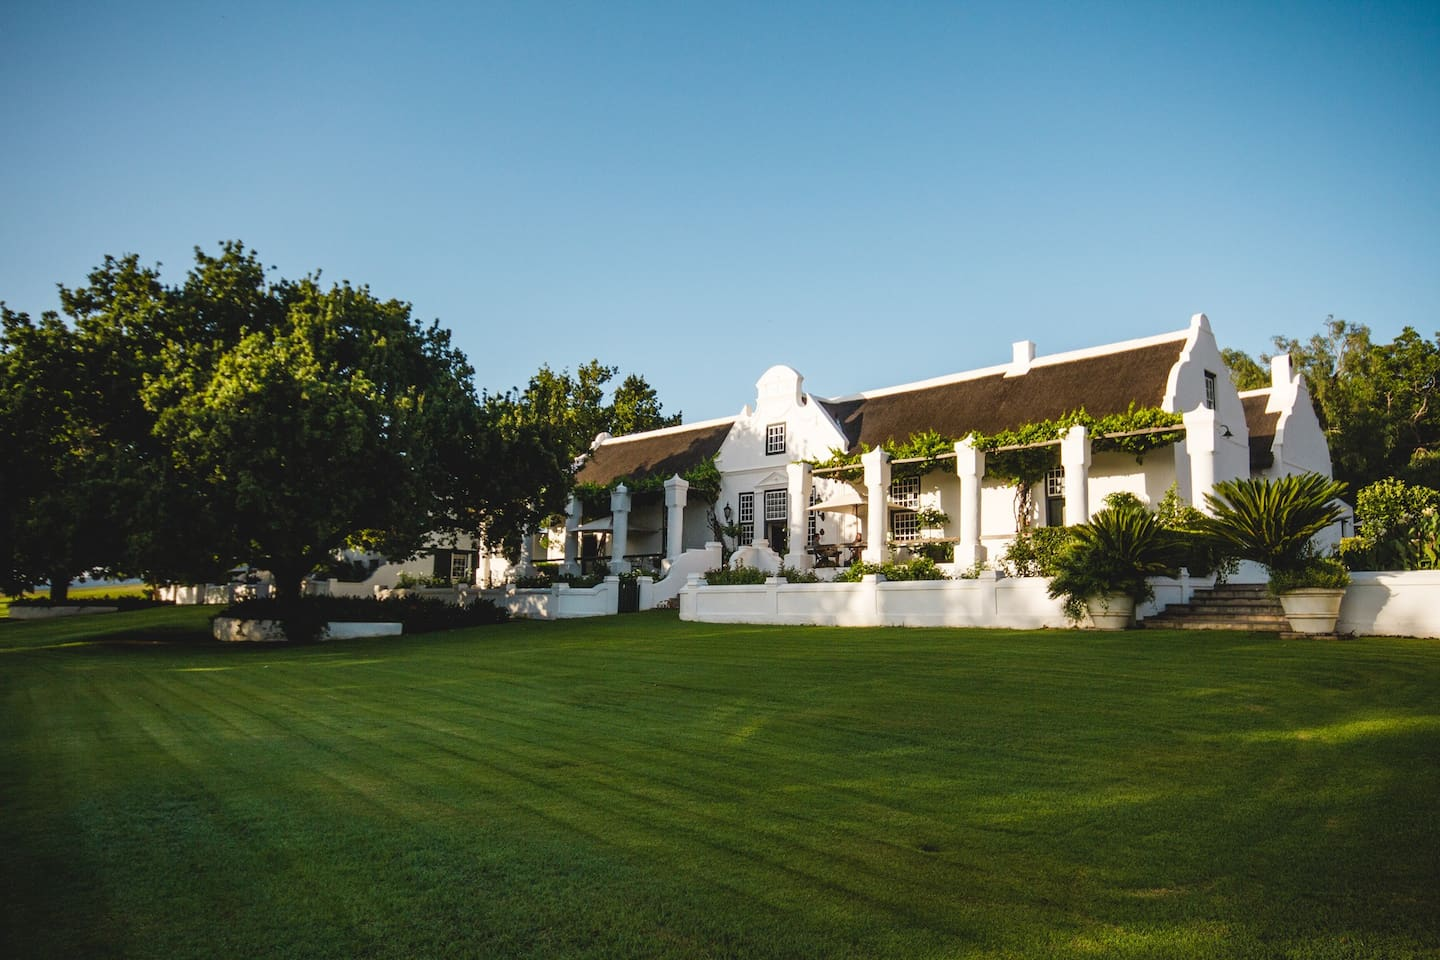 The beautiful Cape Dutch manor house on the Klipperivier small holding dating back to 1820